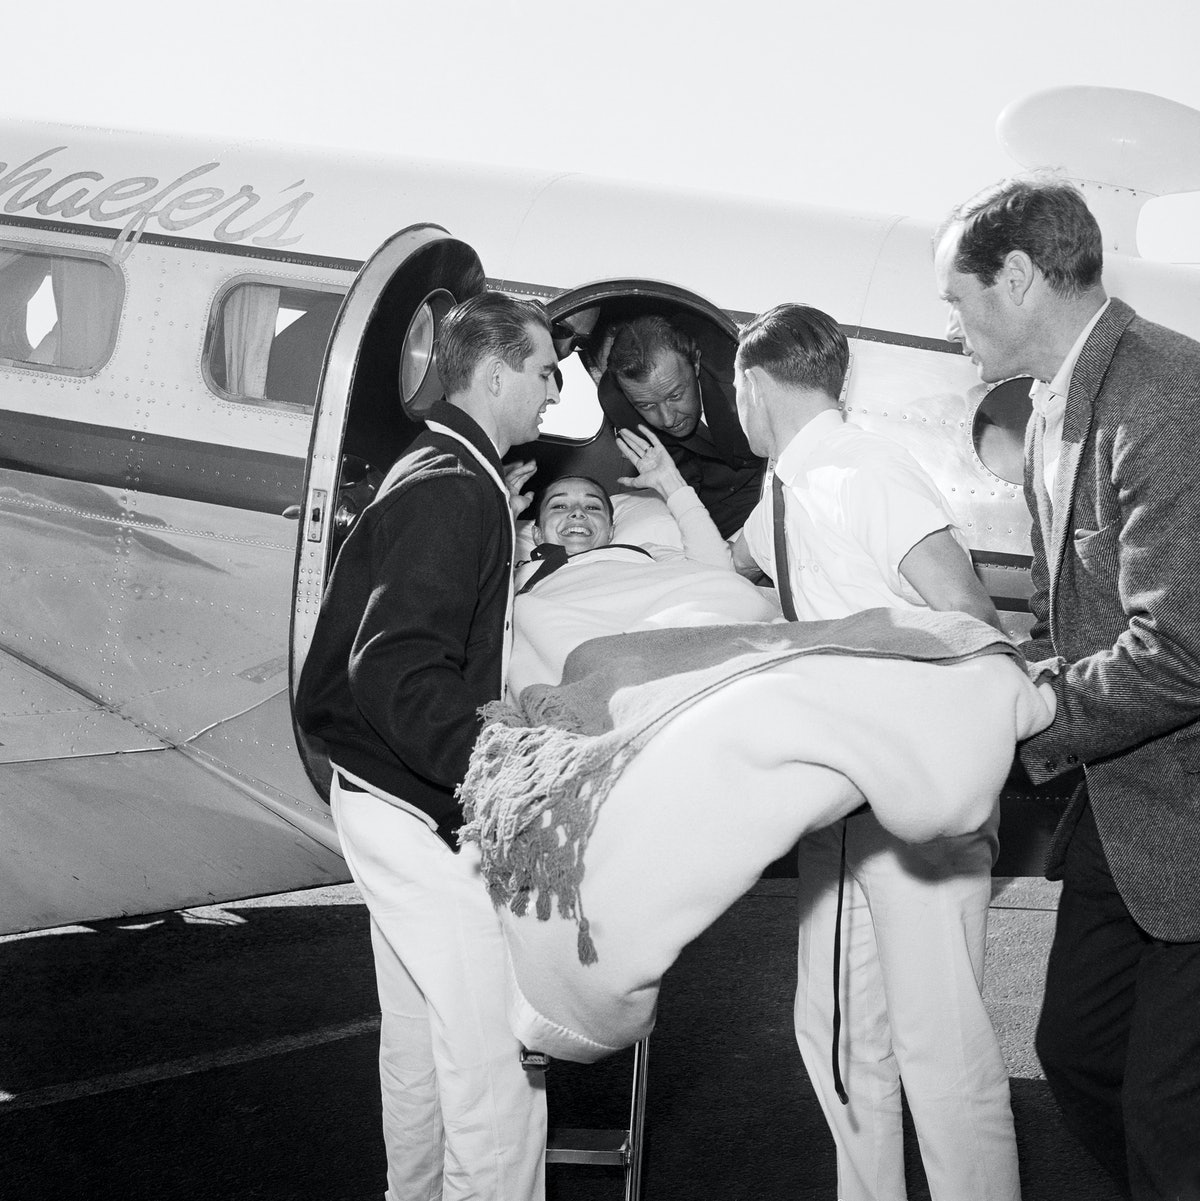 Men Lifting Audrey Hepburn on Stretcher from Airplane